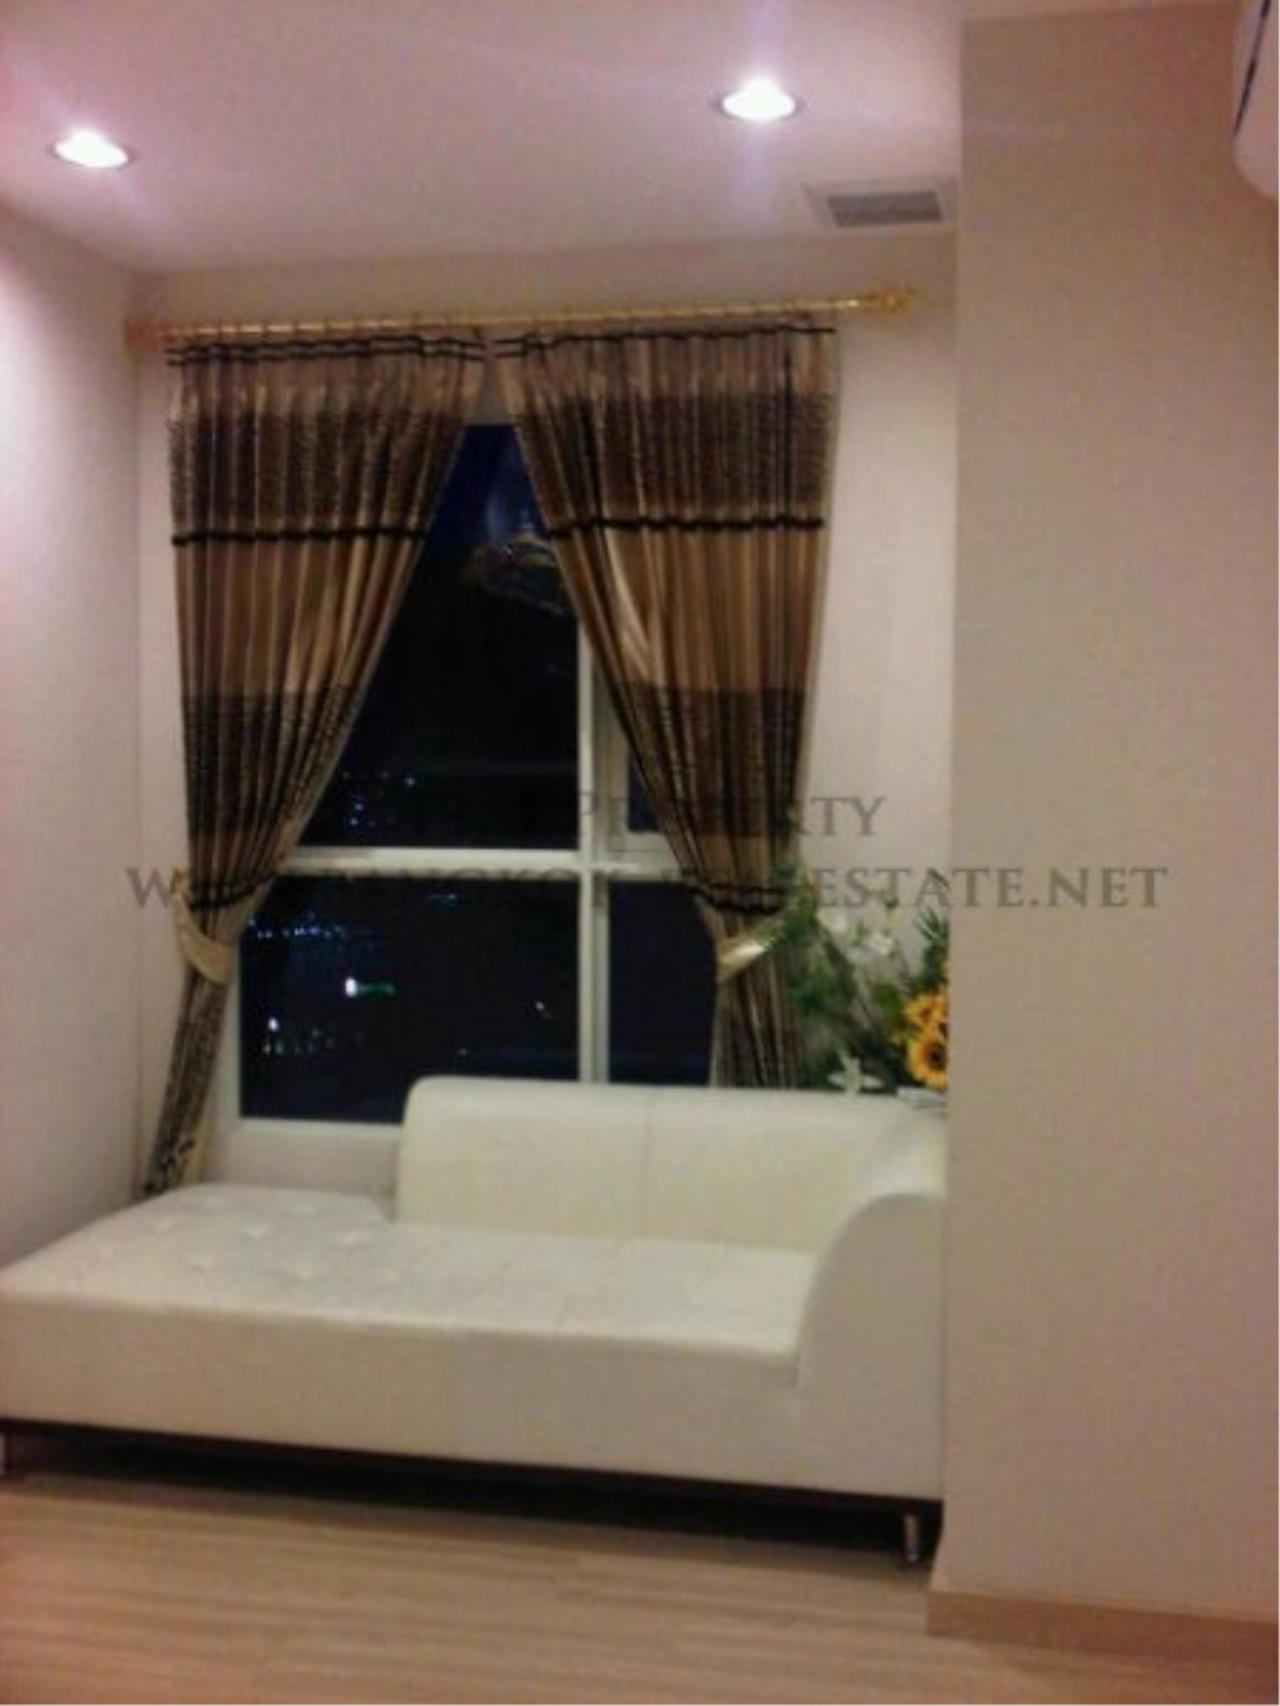 Piri Property Agency's 2 Bedroom Condo in the Lighthouse Condominium for sale - 27th Floor 2